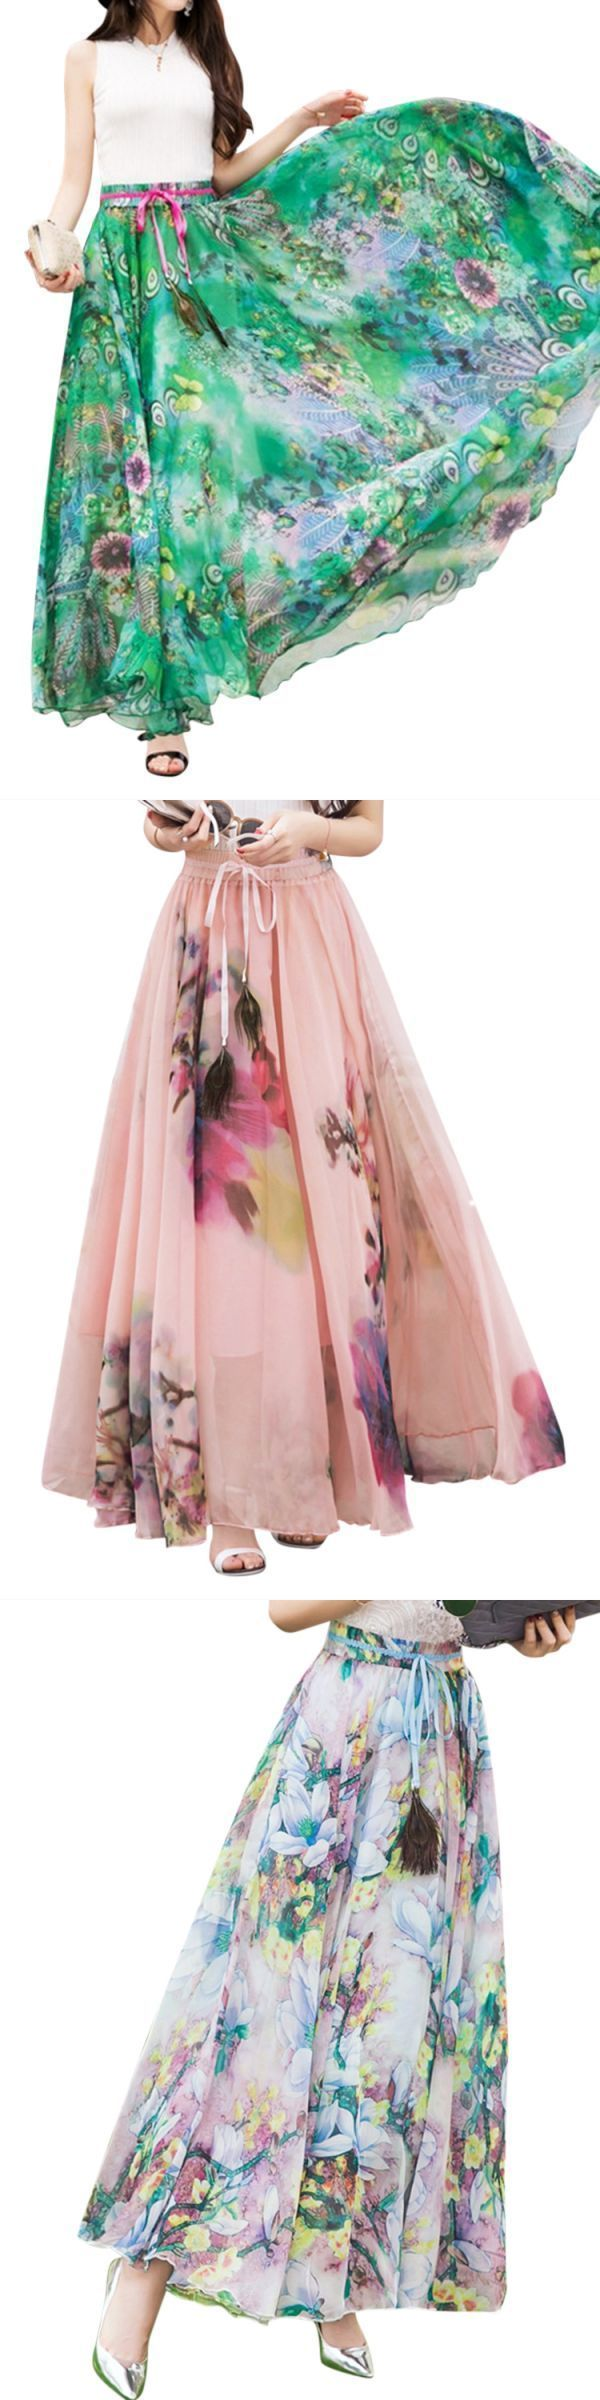 Summer bohemian floral printed beach chiffon maxi shirts ramp;m richards skirts #skirts #calf #length #skirts #in #the #wind #skirts #riding #up #title #9 #skirts